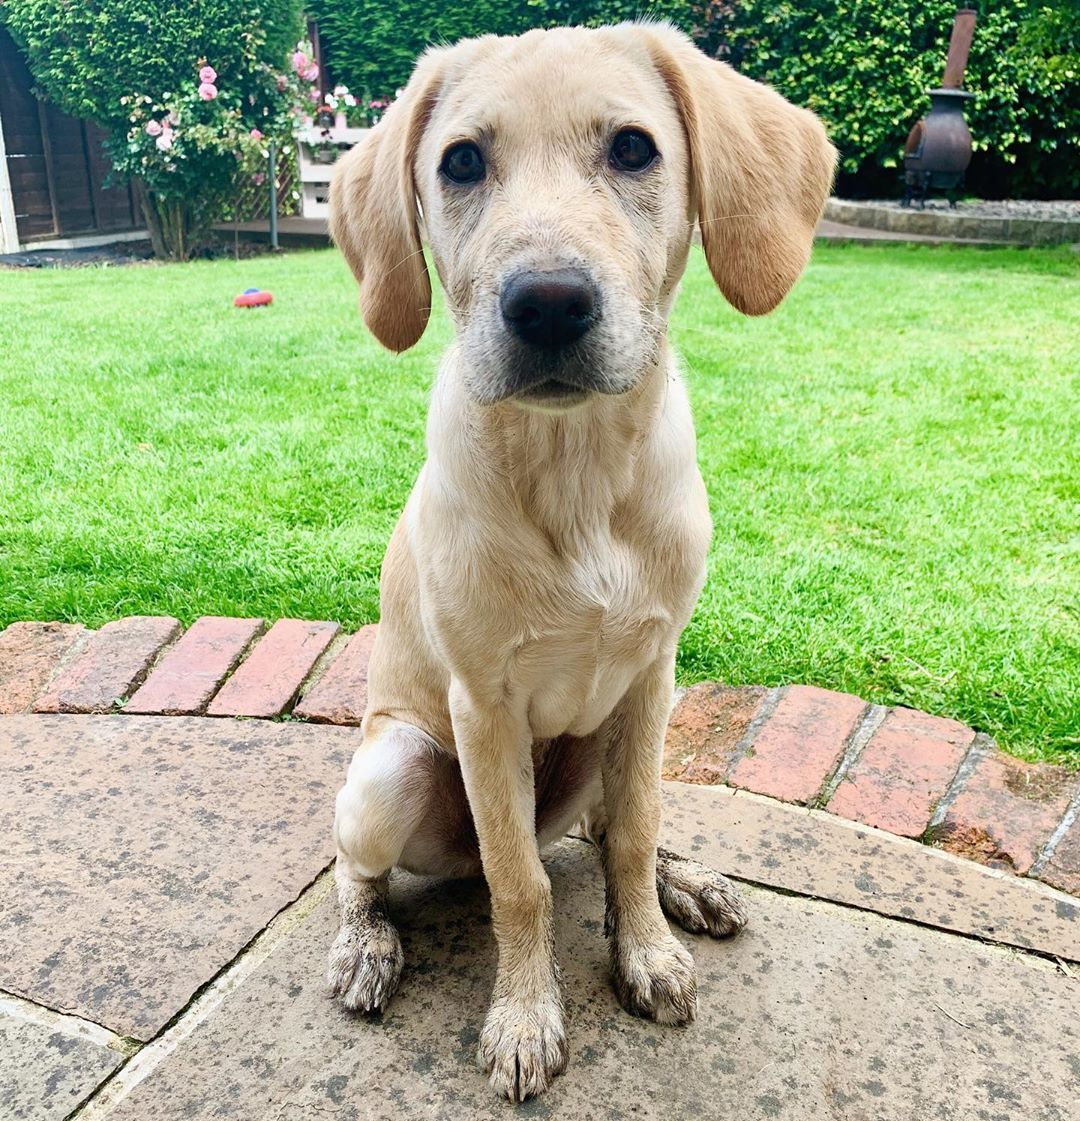 I wonder who's been digging up my garden 🤔🐾🐾 • • • • • #goldenlab #goldenlabrador #labrador #labradorsofinstagram #labradoroftheday #dogoftheday #instalabs #dogsofinstagram #puppiesofinstagram #instadog #laboftheday #labradorable #petoftheday #petsofinstagram #labrador_lovers #worldoflabs #goldengirl #talesofalab #labrador_class #labradorable #laboftheday #labradors4life #labradorlove #puppy #puppies #tonguesouttuesday #tuesdayvibes #tuesday #tuesdaymood